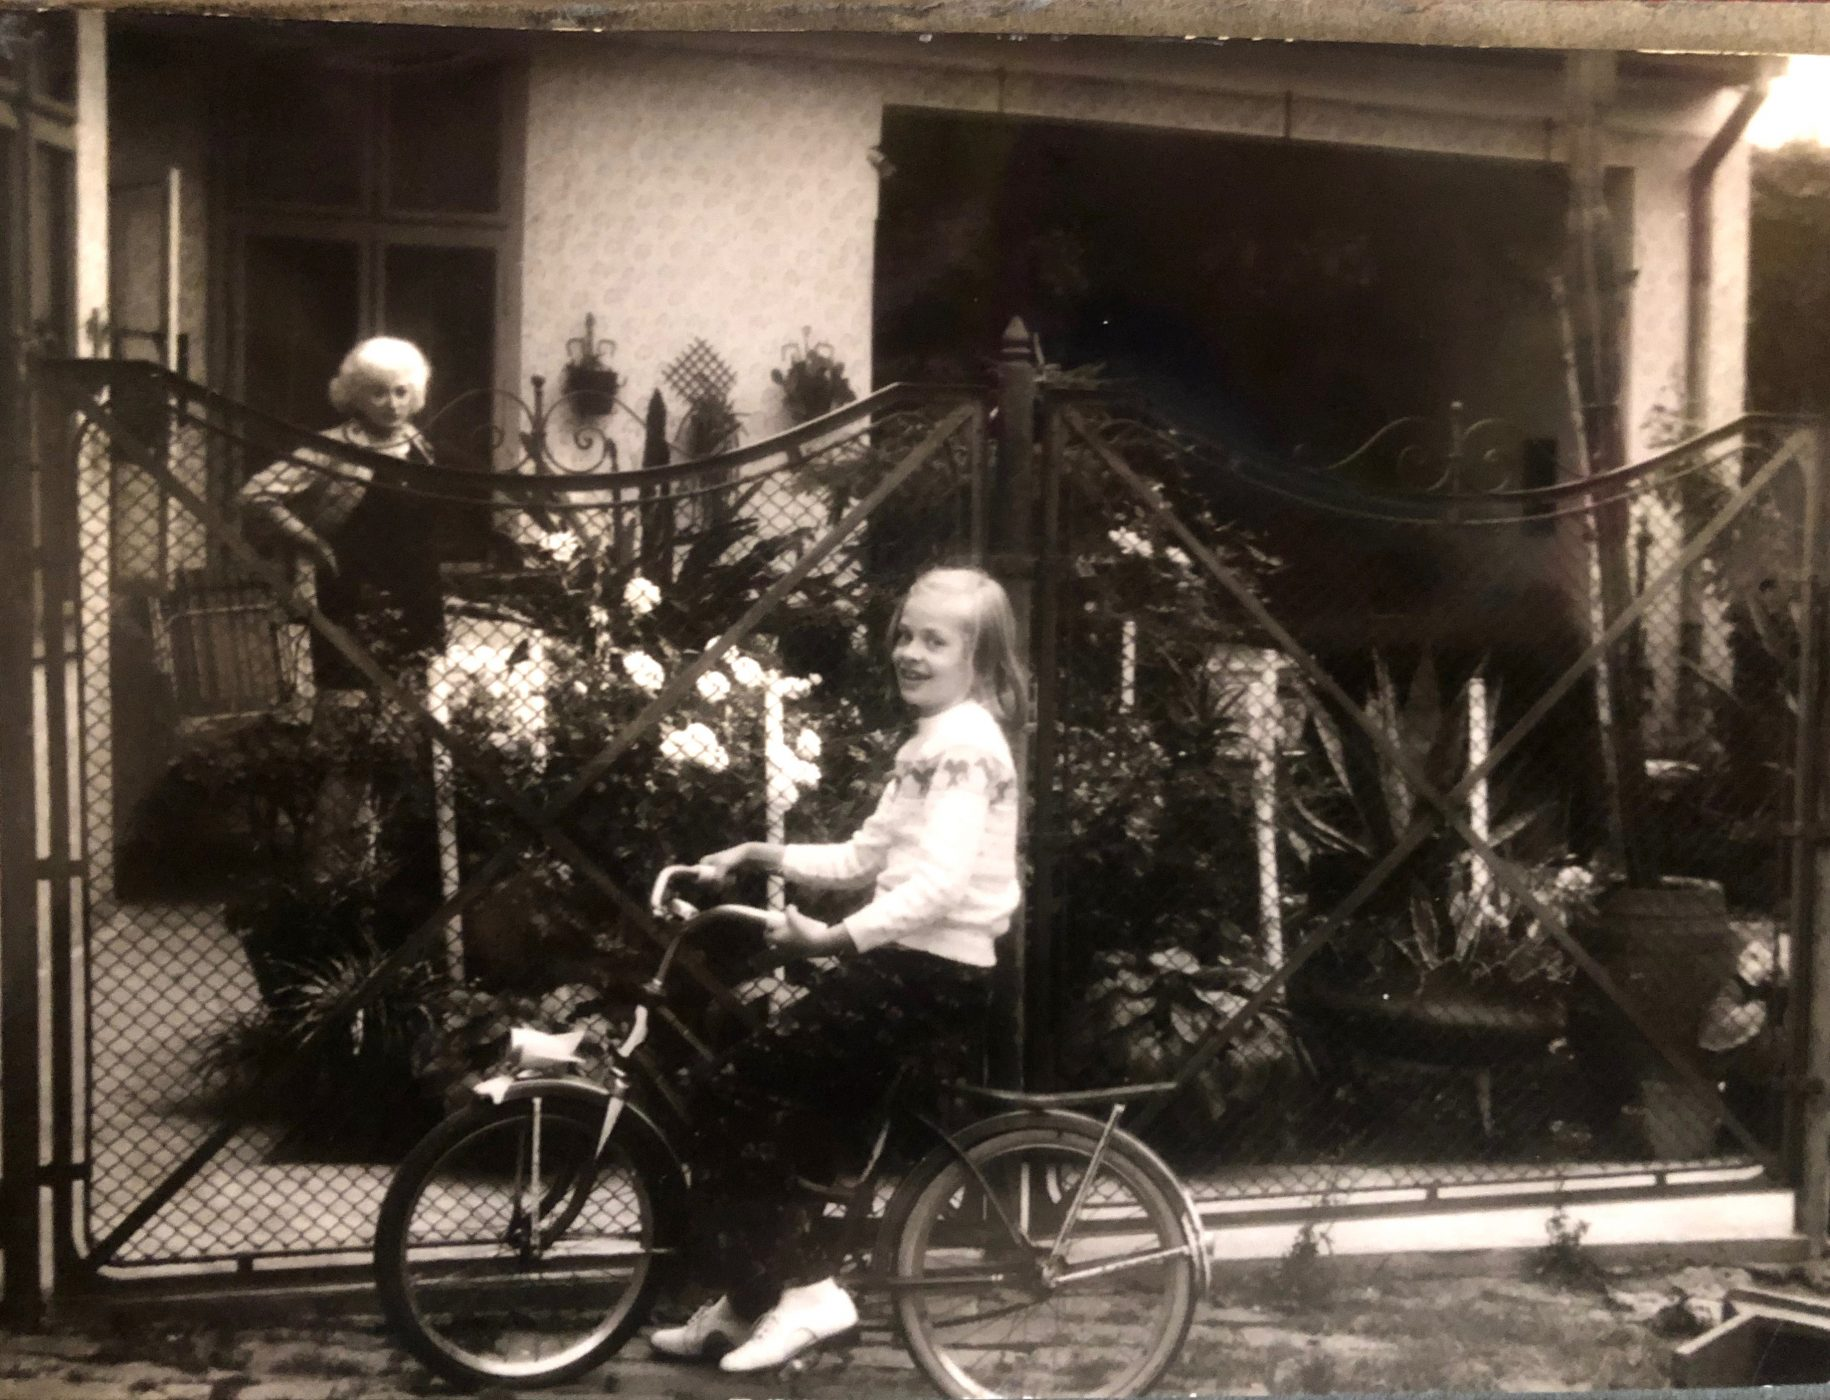 sepia photo of young blond girl smiling on a bicycle with mother in background hands on hips